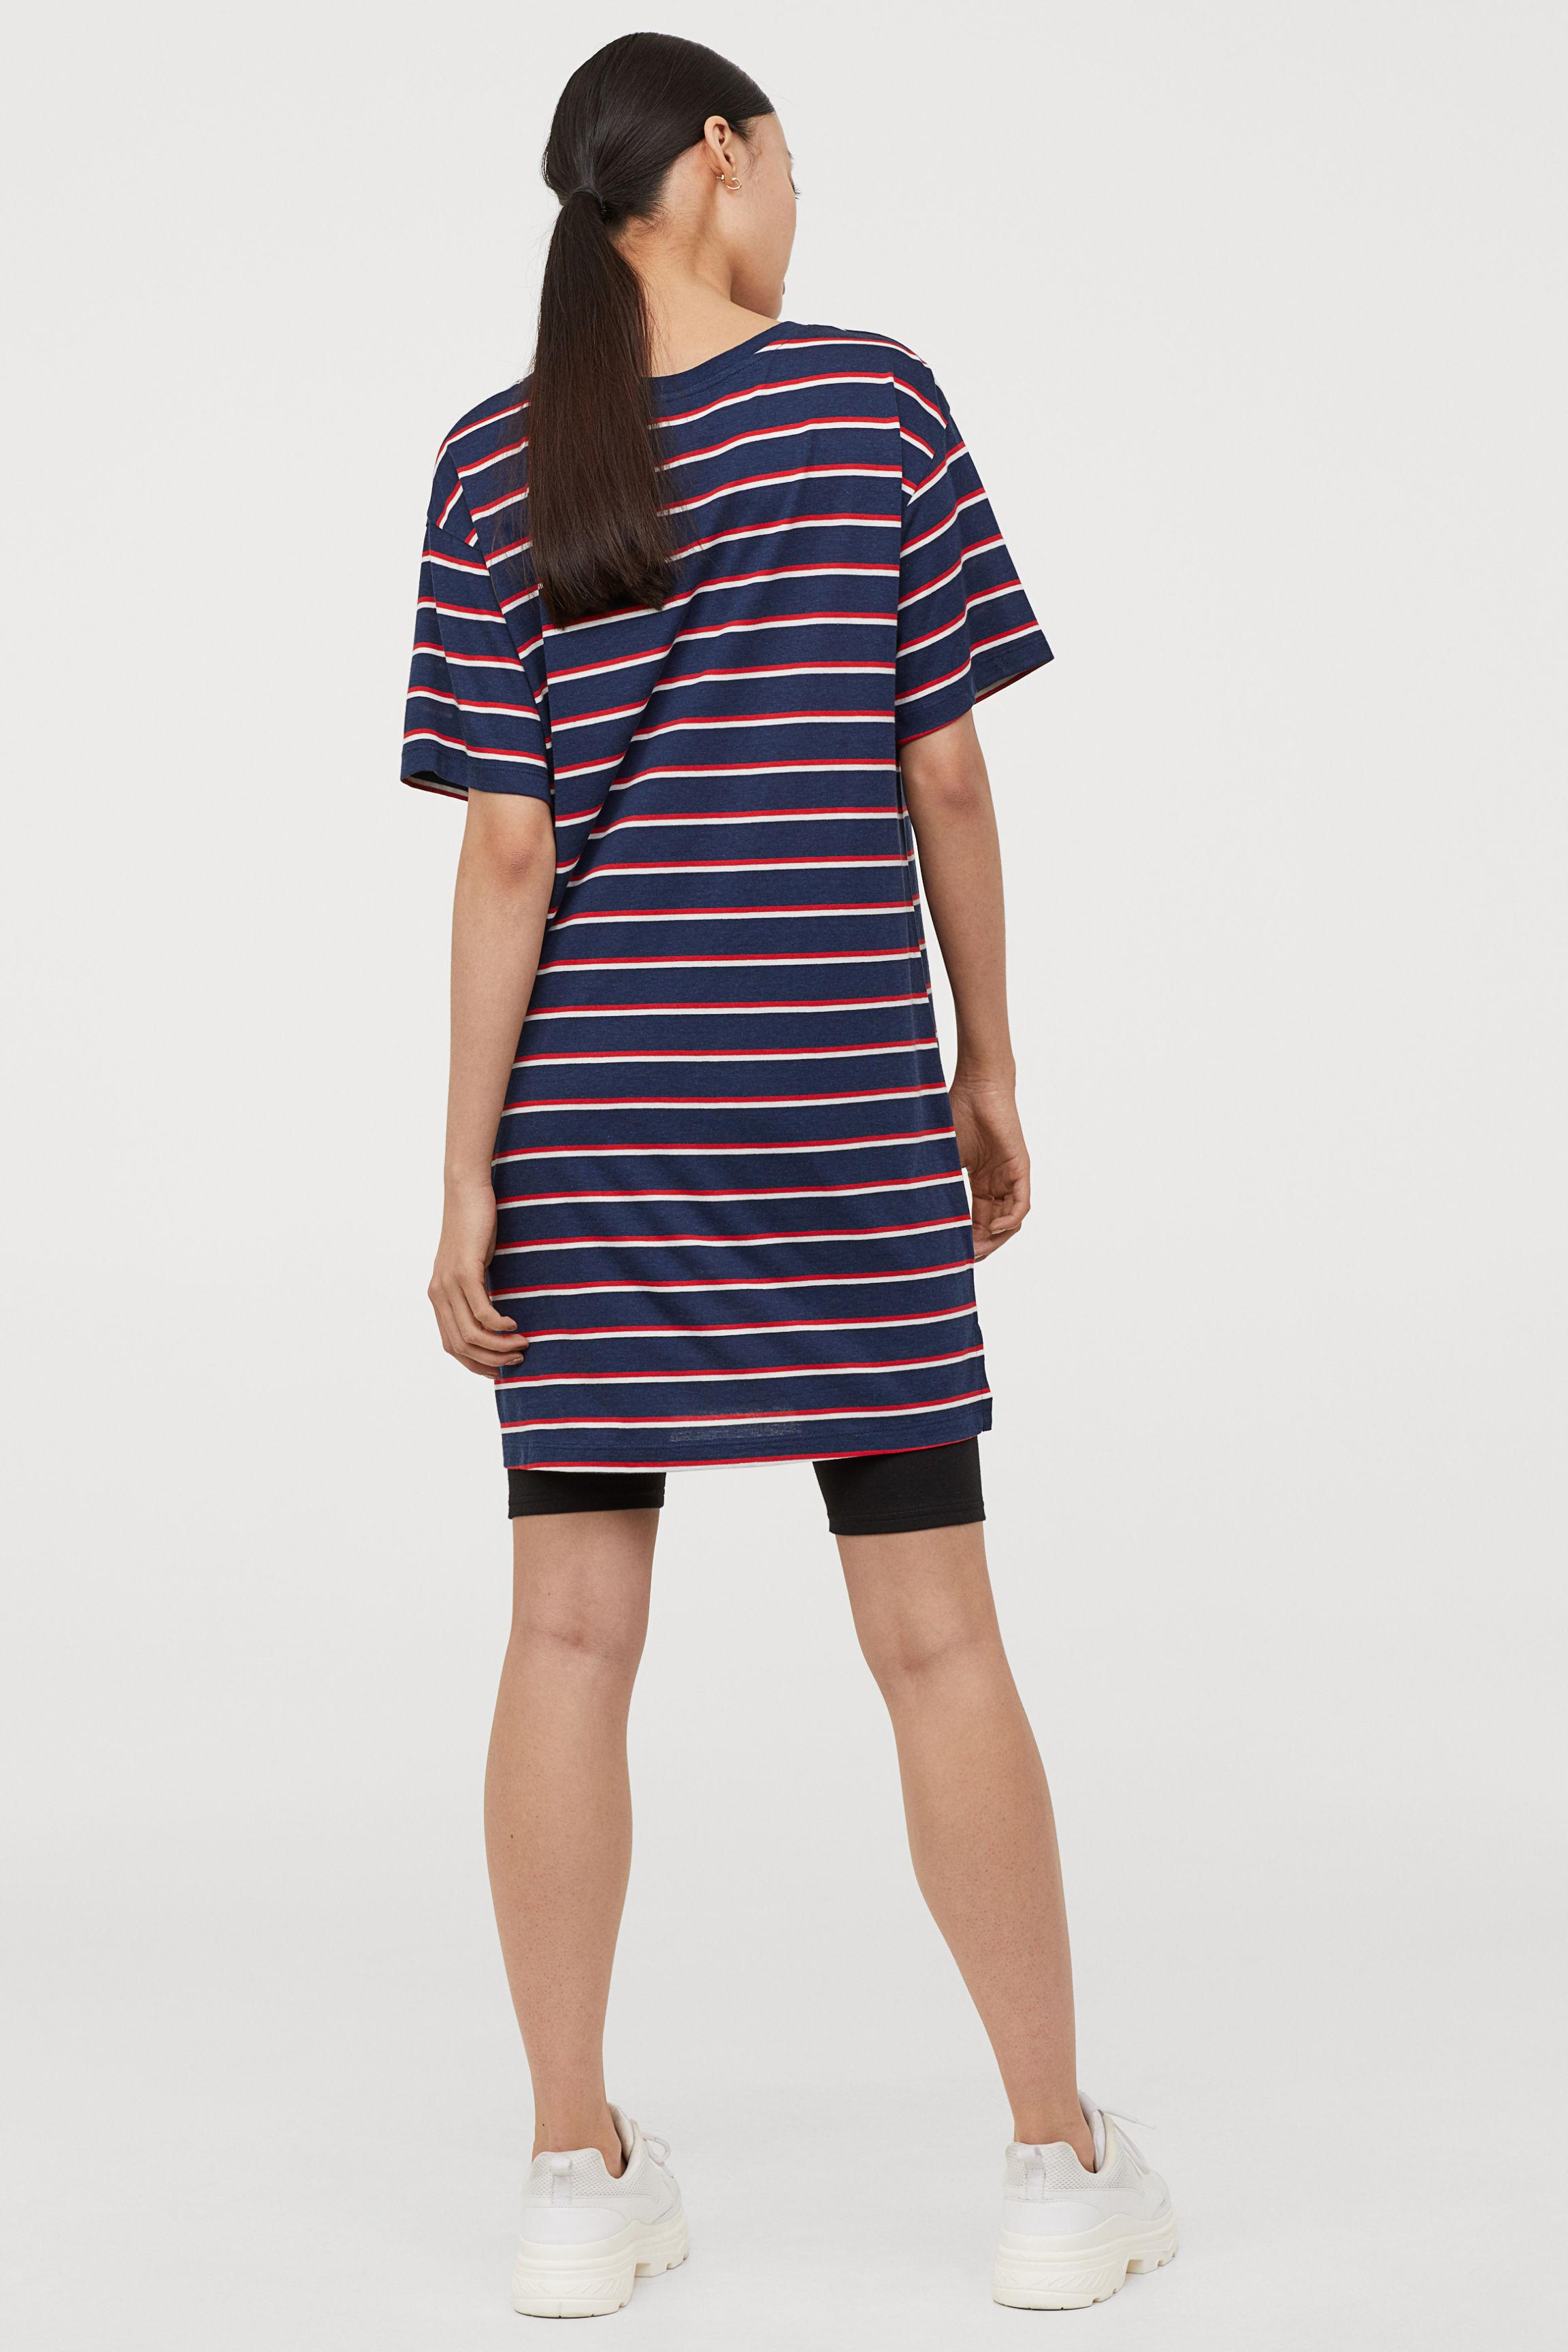 H and m bodycon dress t shirts